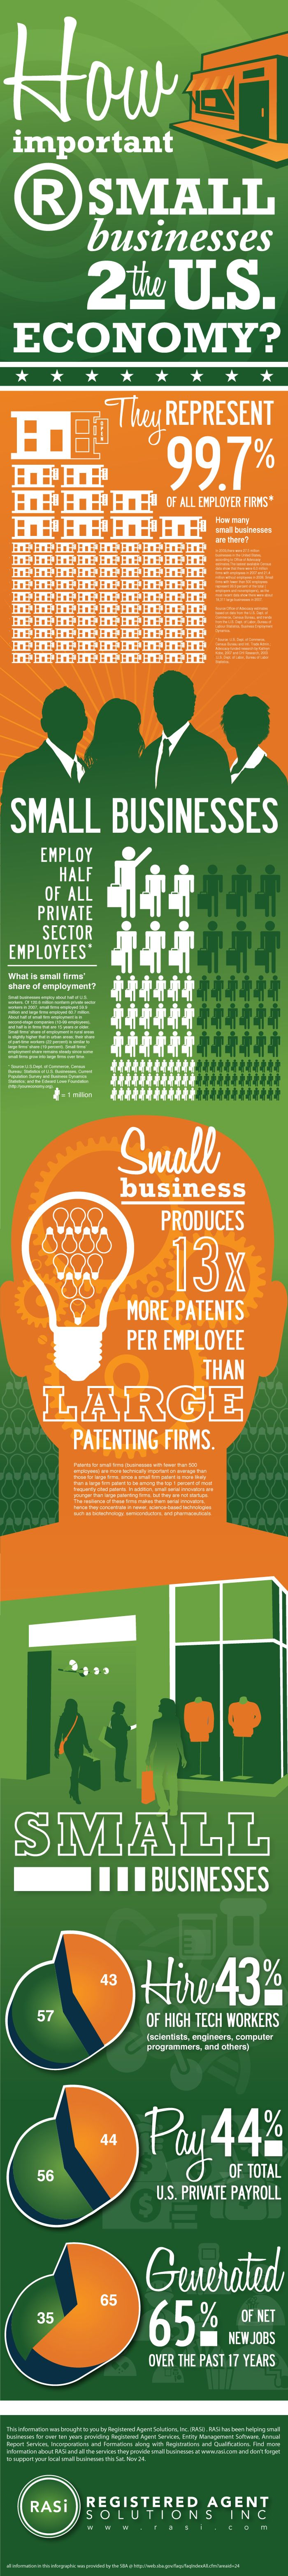 The Importance Of Small Businesses To The United States